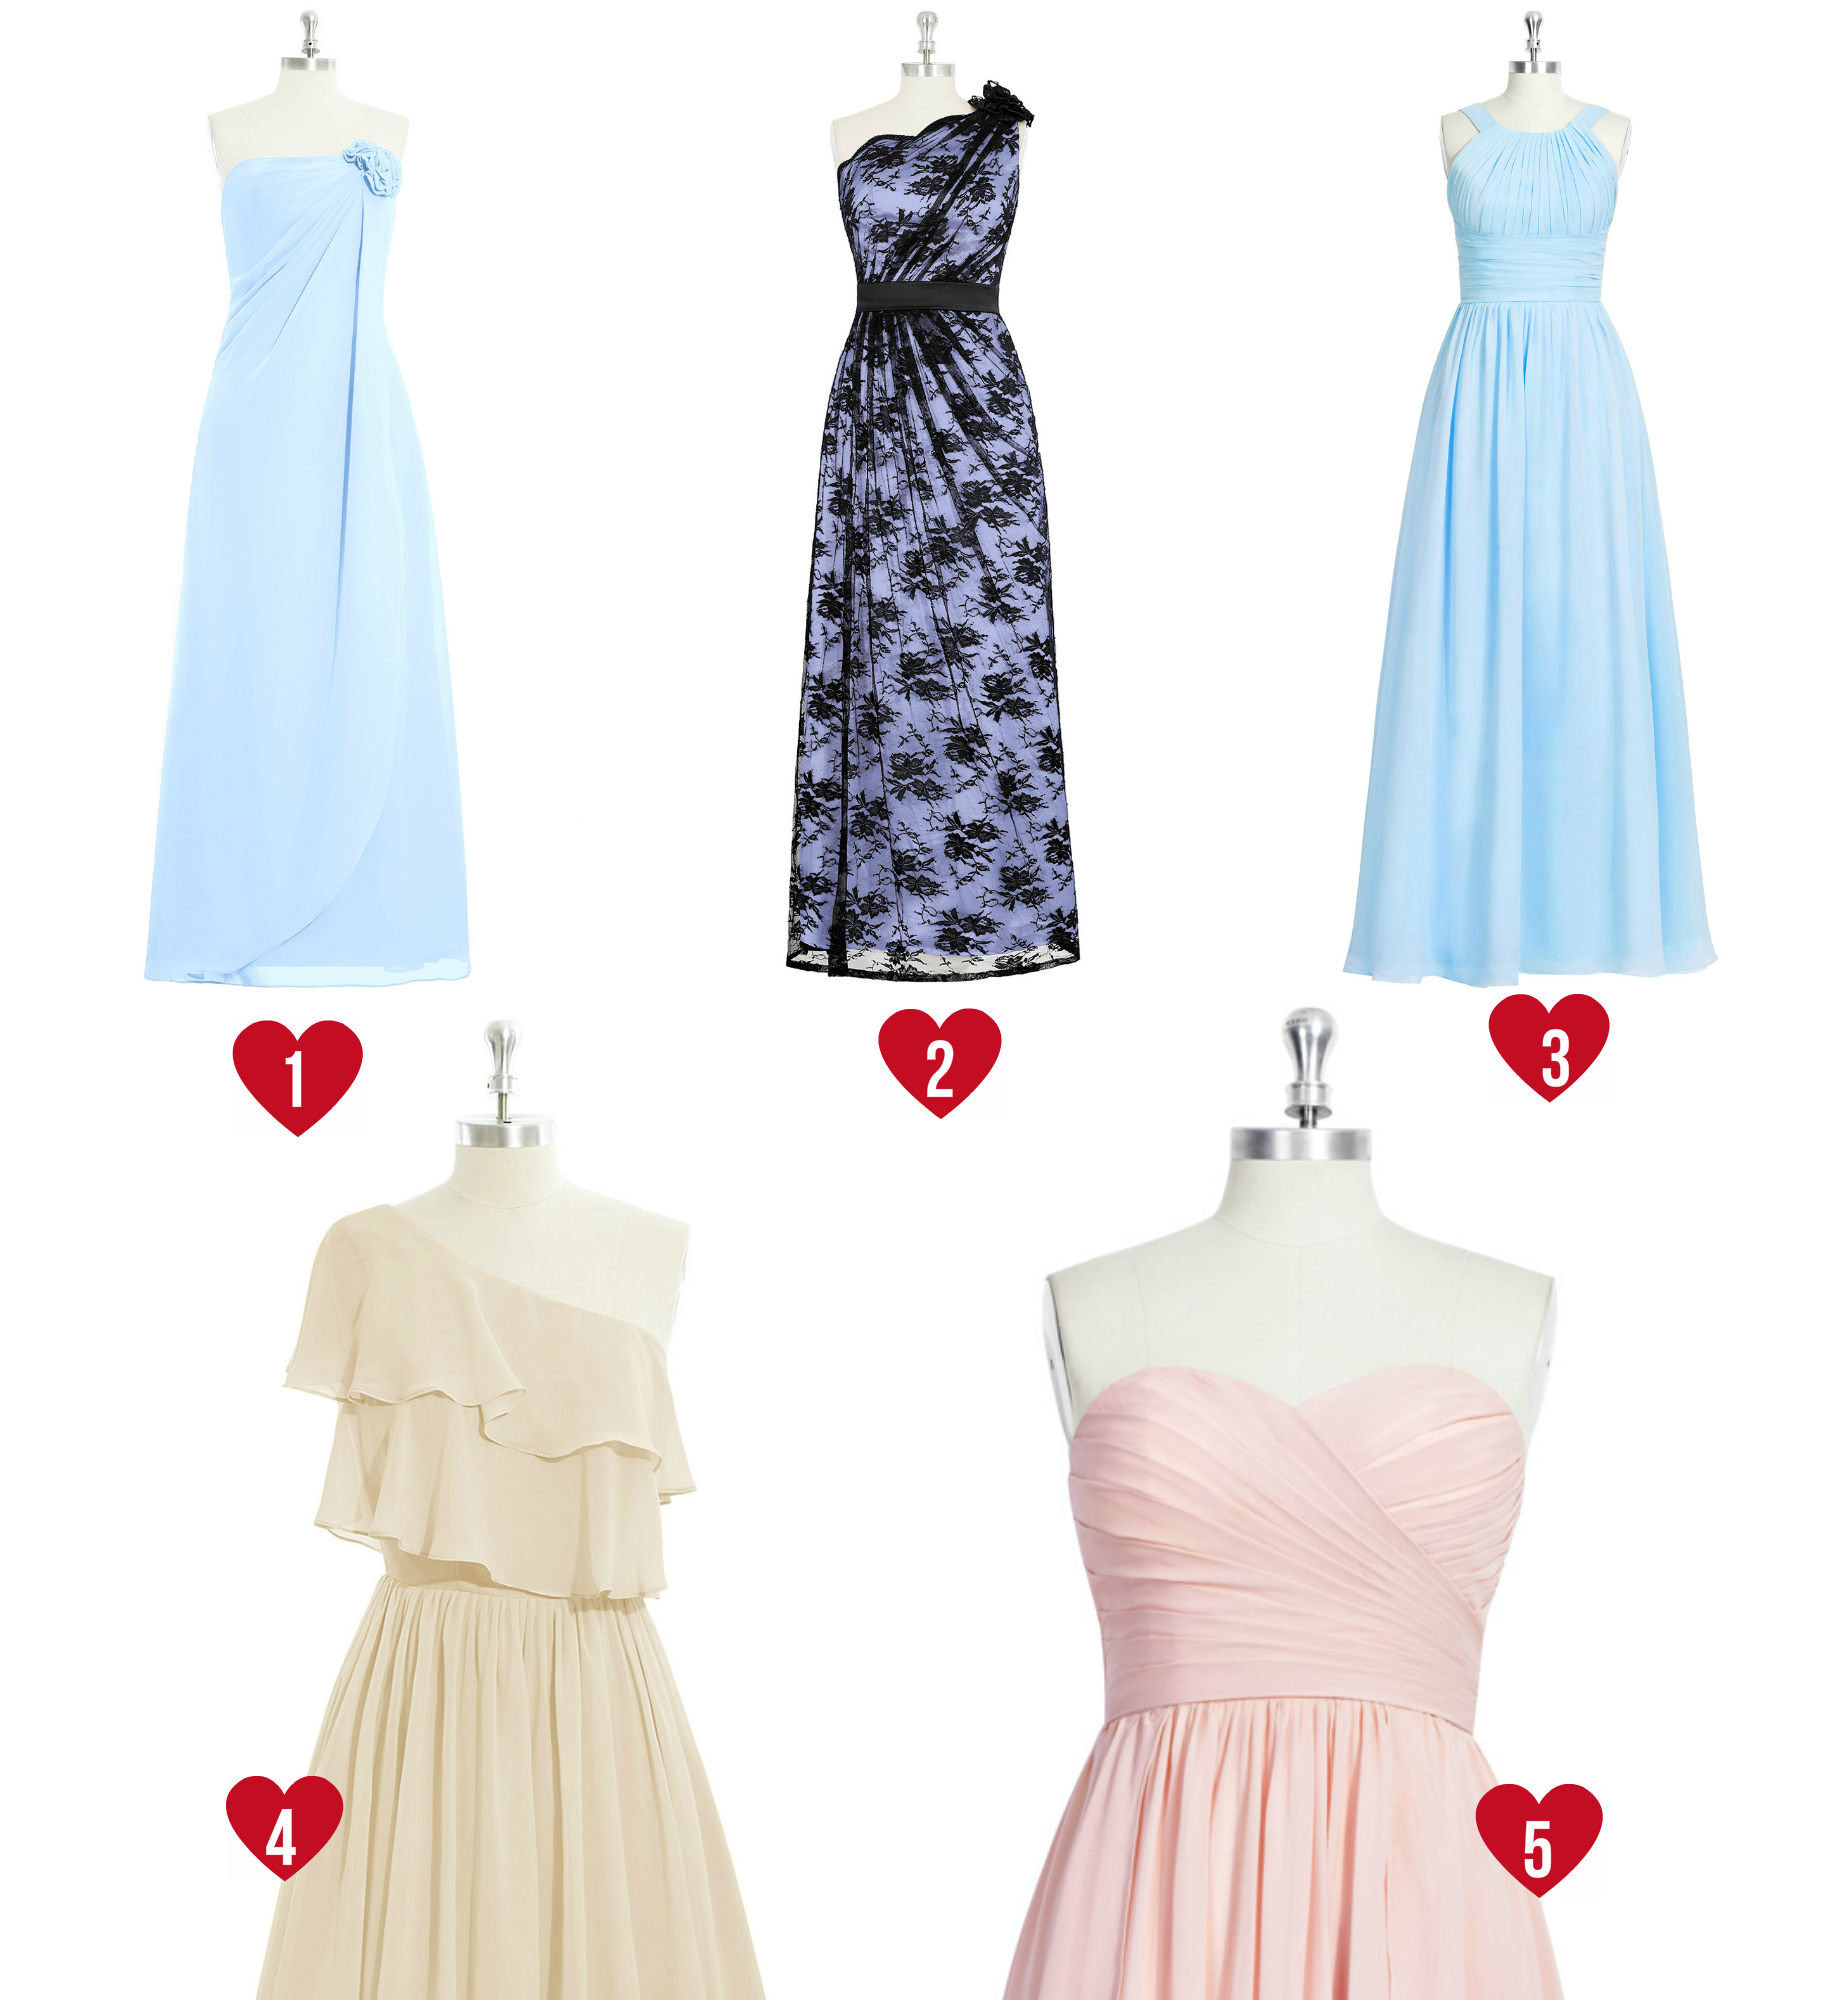 AZAZIE_Bridesmaid_Dresses_Lauren-Conrad_Paper_Crowns